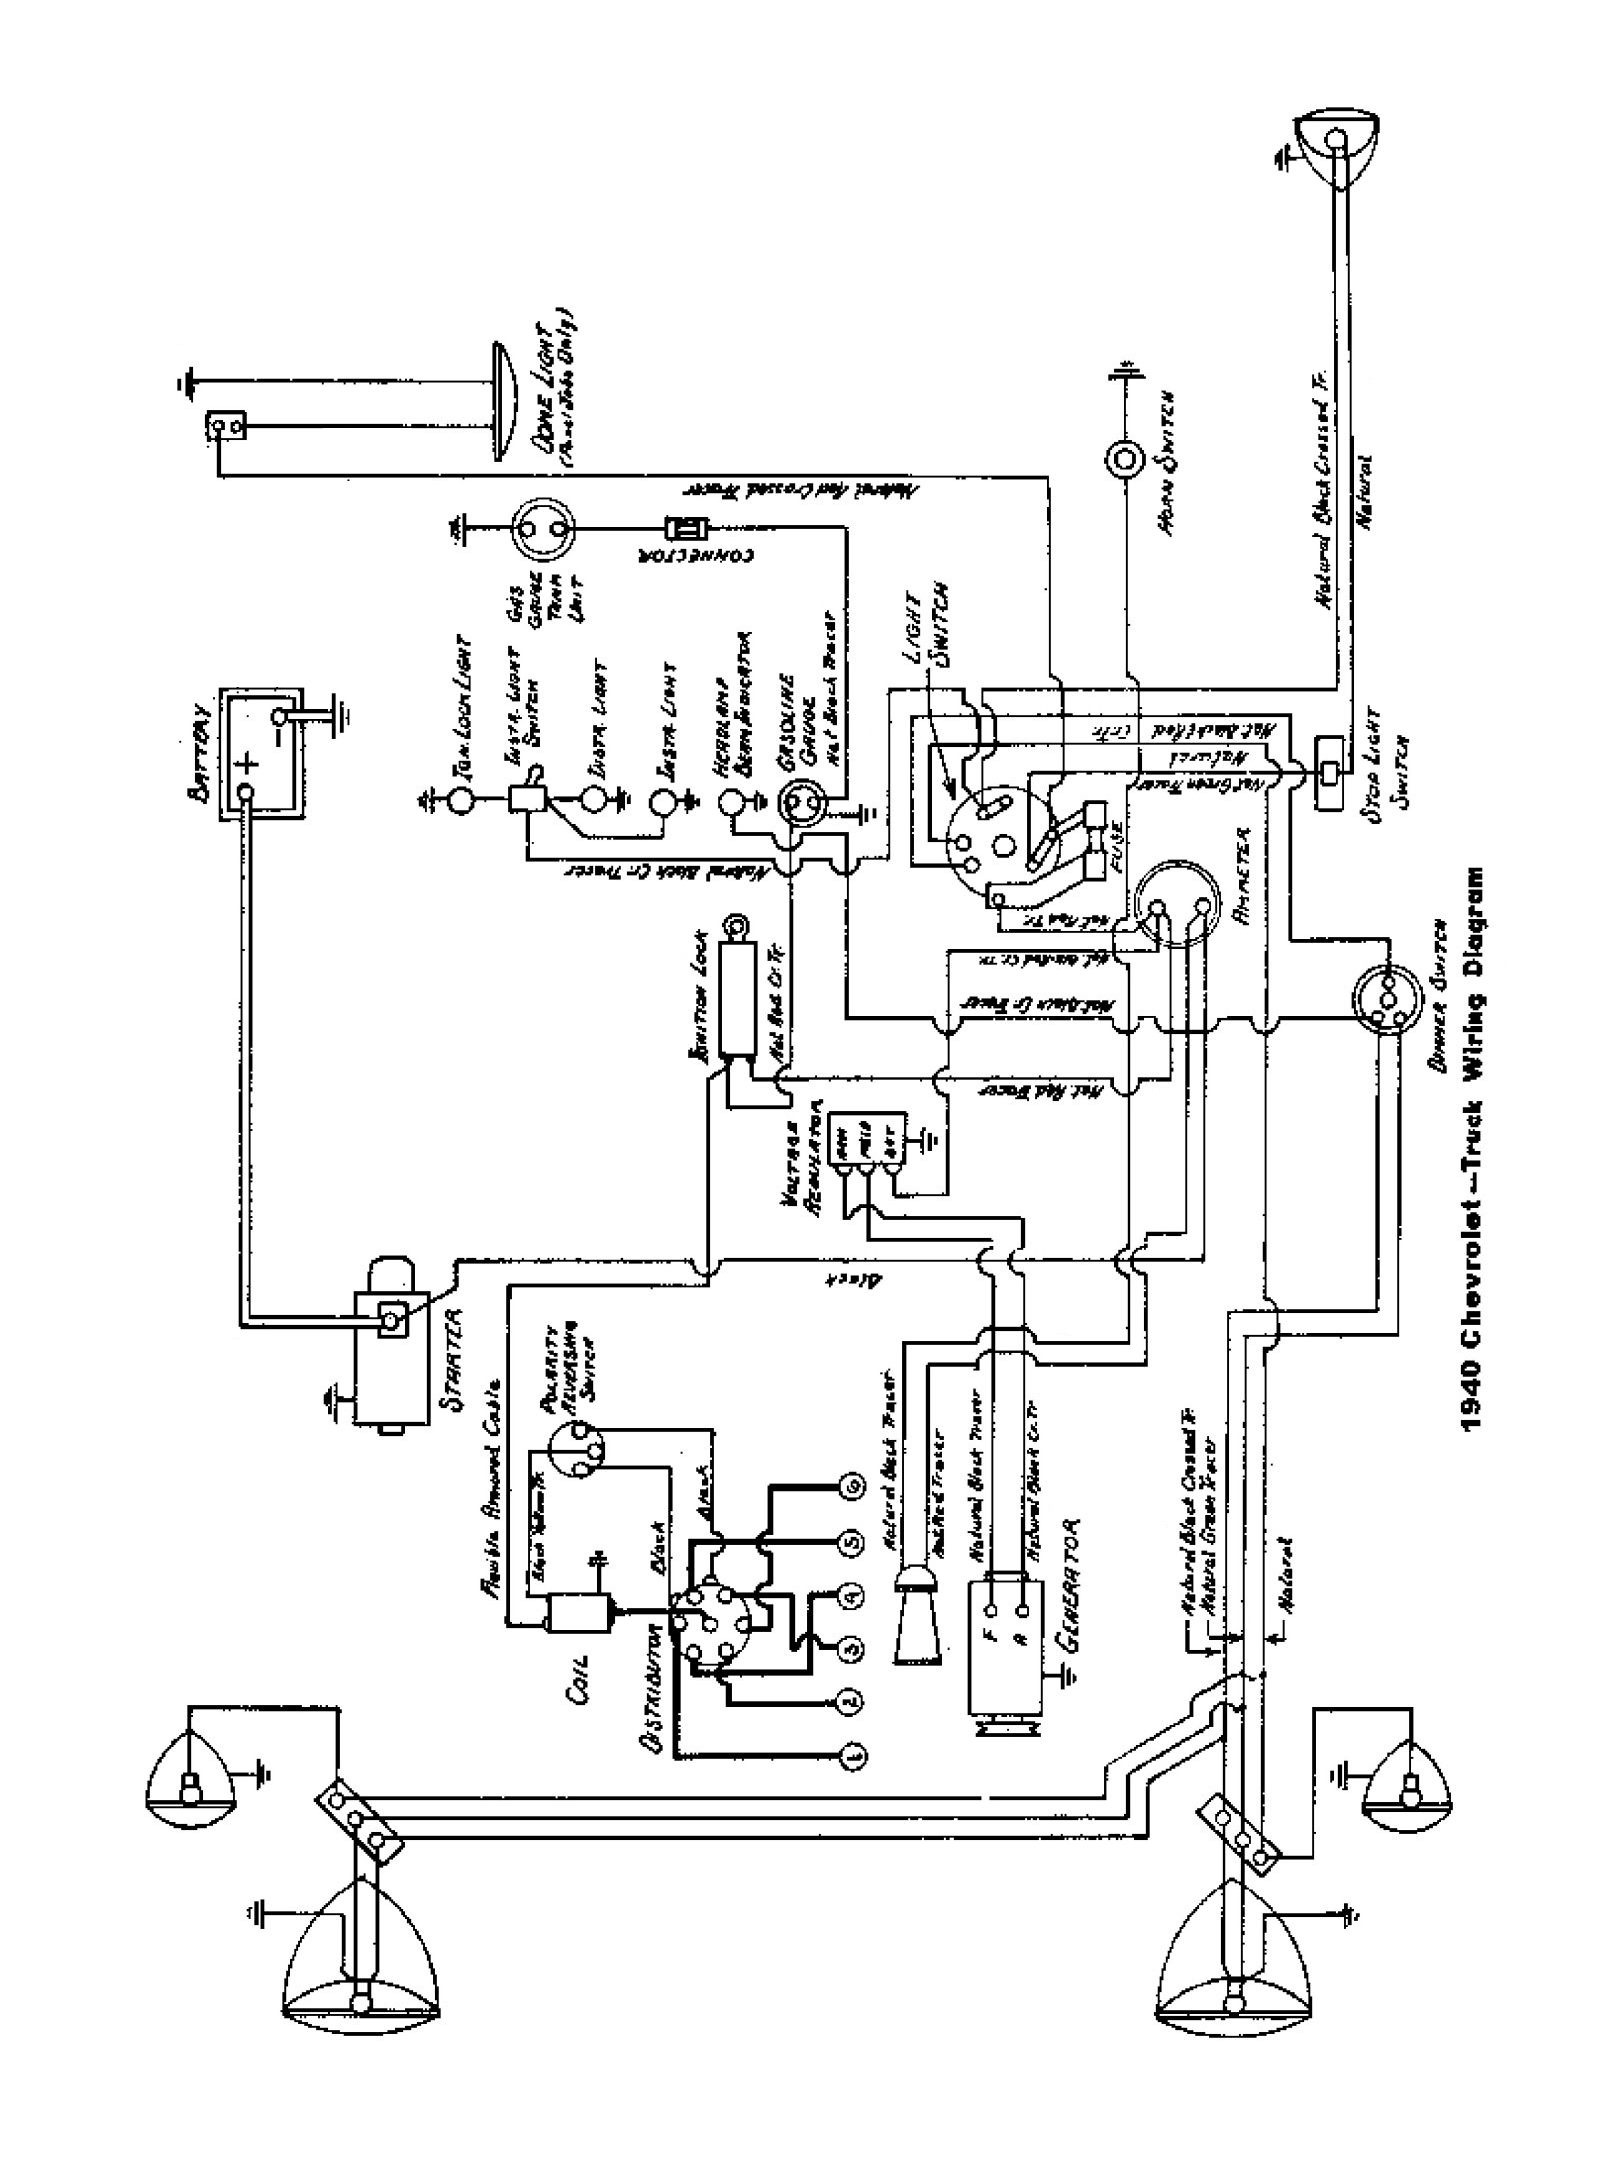 A Modern Gm Starter Wiring - Wiring Diagram • on starter relay outlets, stator wiring, starter kill relay diagram, starter relay circuits, starter relay grounding, diode wiring, boat motor wiring, starter relay cable, starter relay fuse, starter relay welding, electric motor wiring, starter relay bypass, starter clutch, starter relay test, 12v dc wiring, starter relay switch, starter solenoid, starter relay operation, starter relay schematic, starter relay clicking,